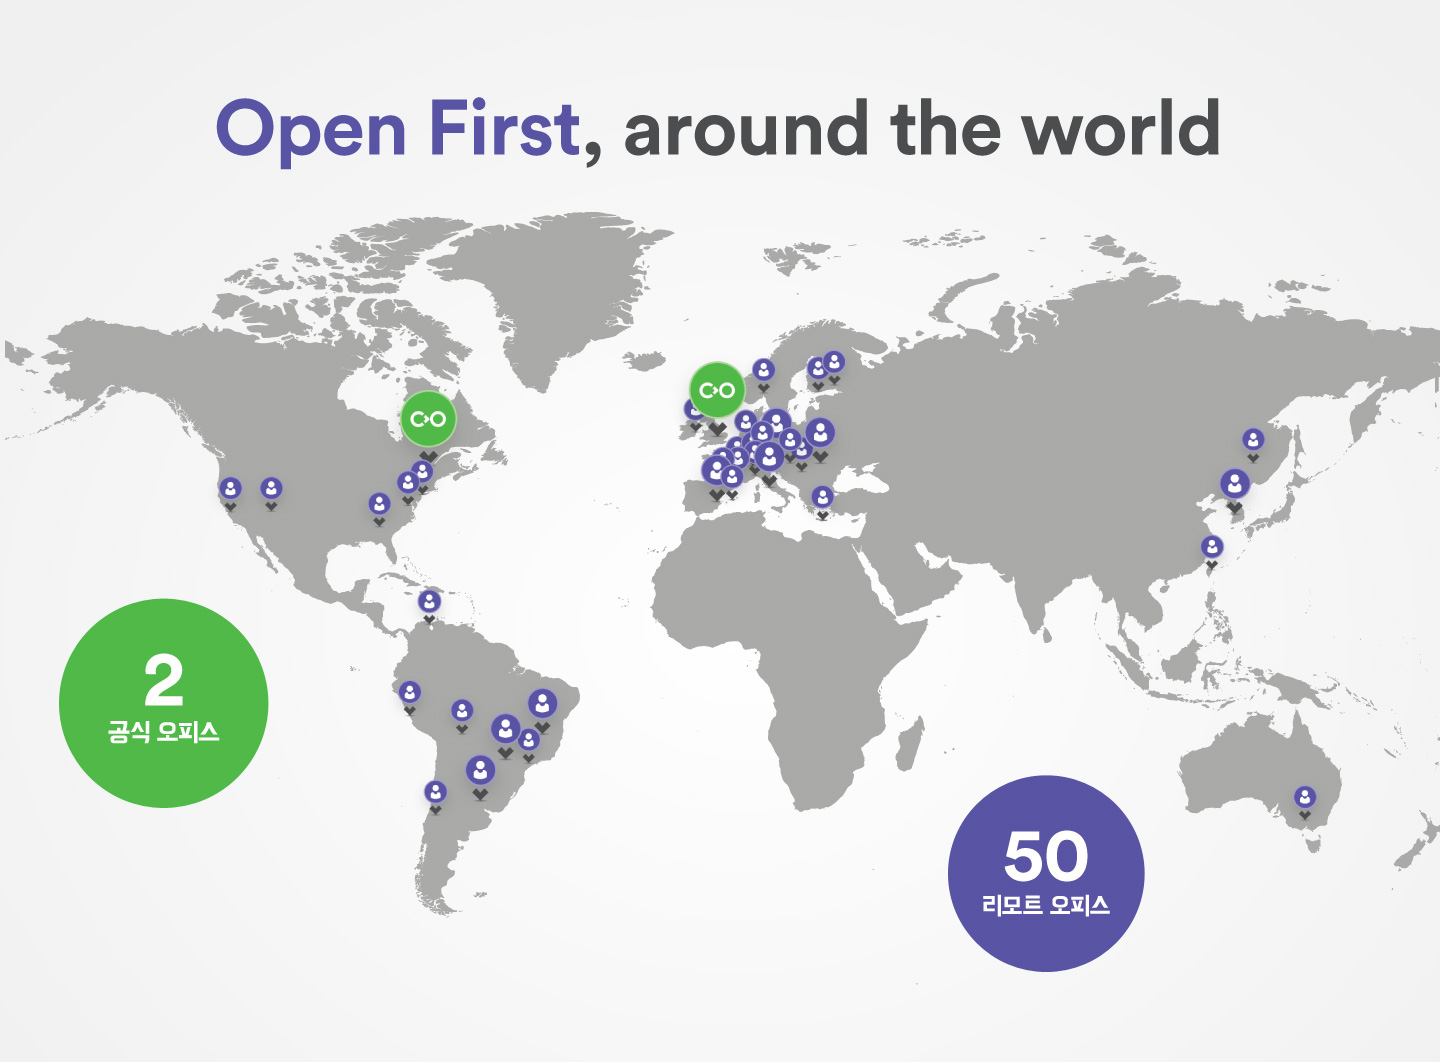 Open First, around the world